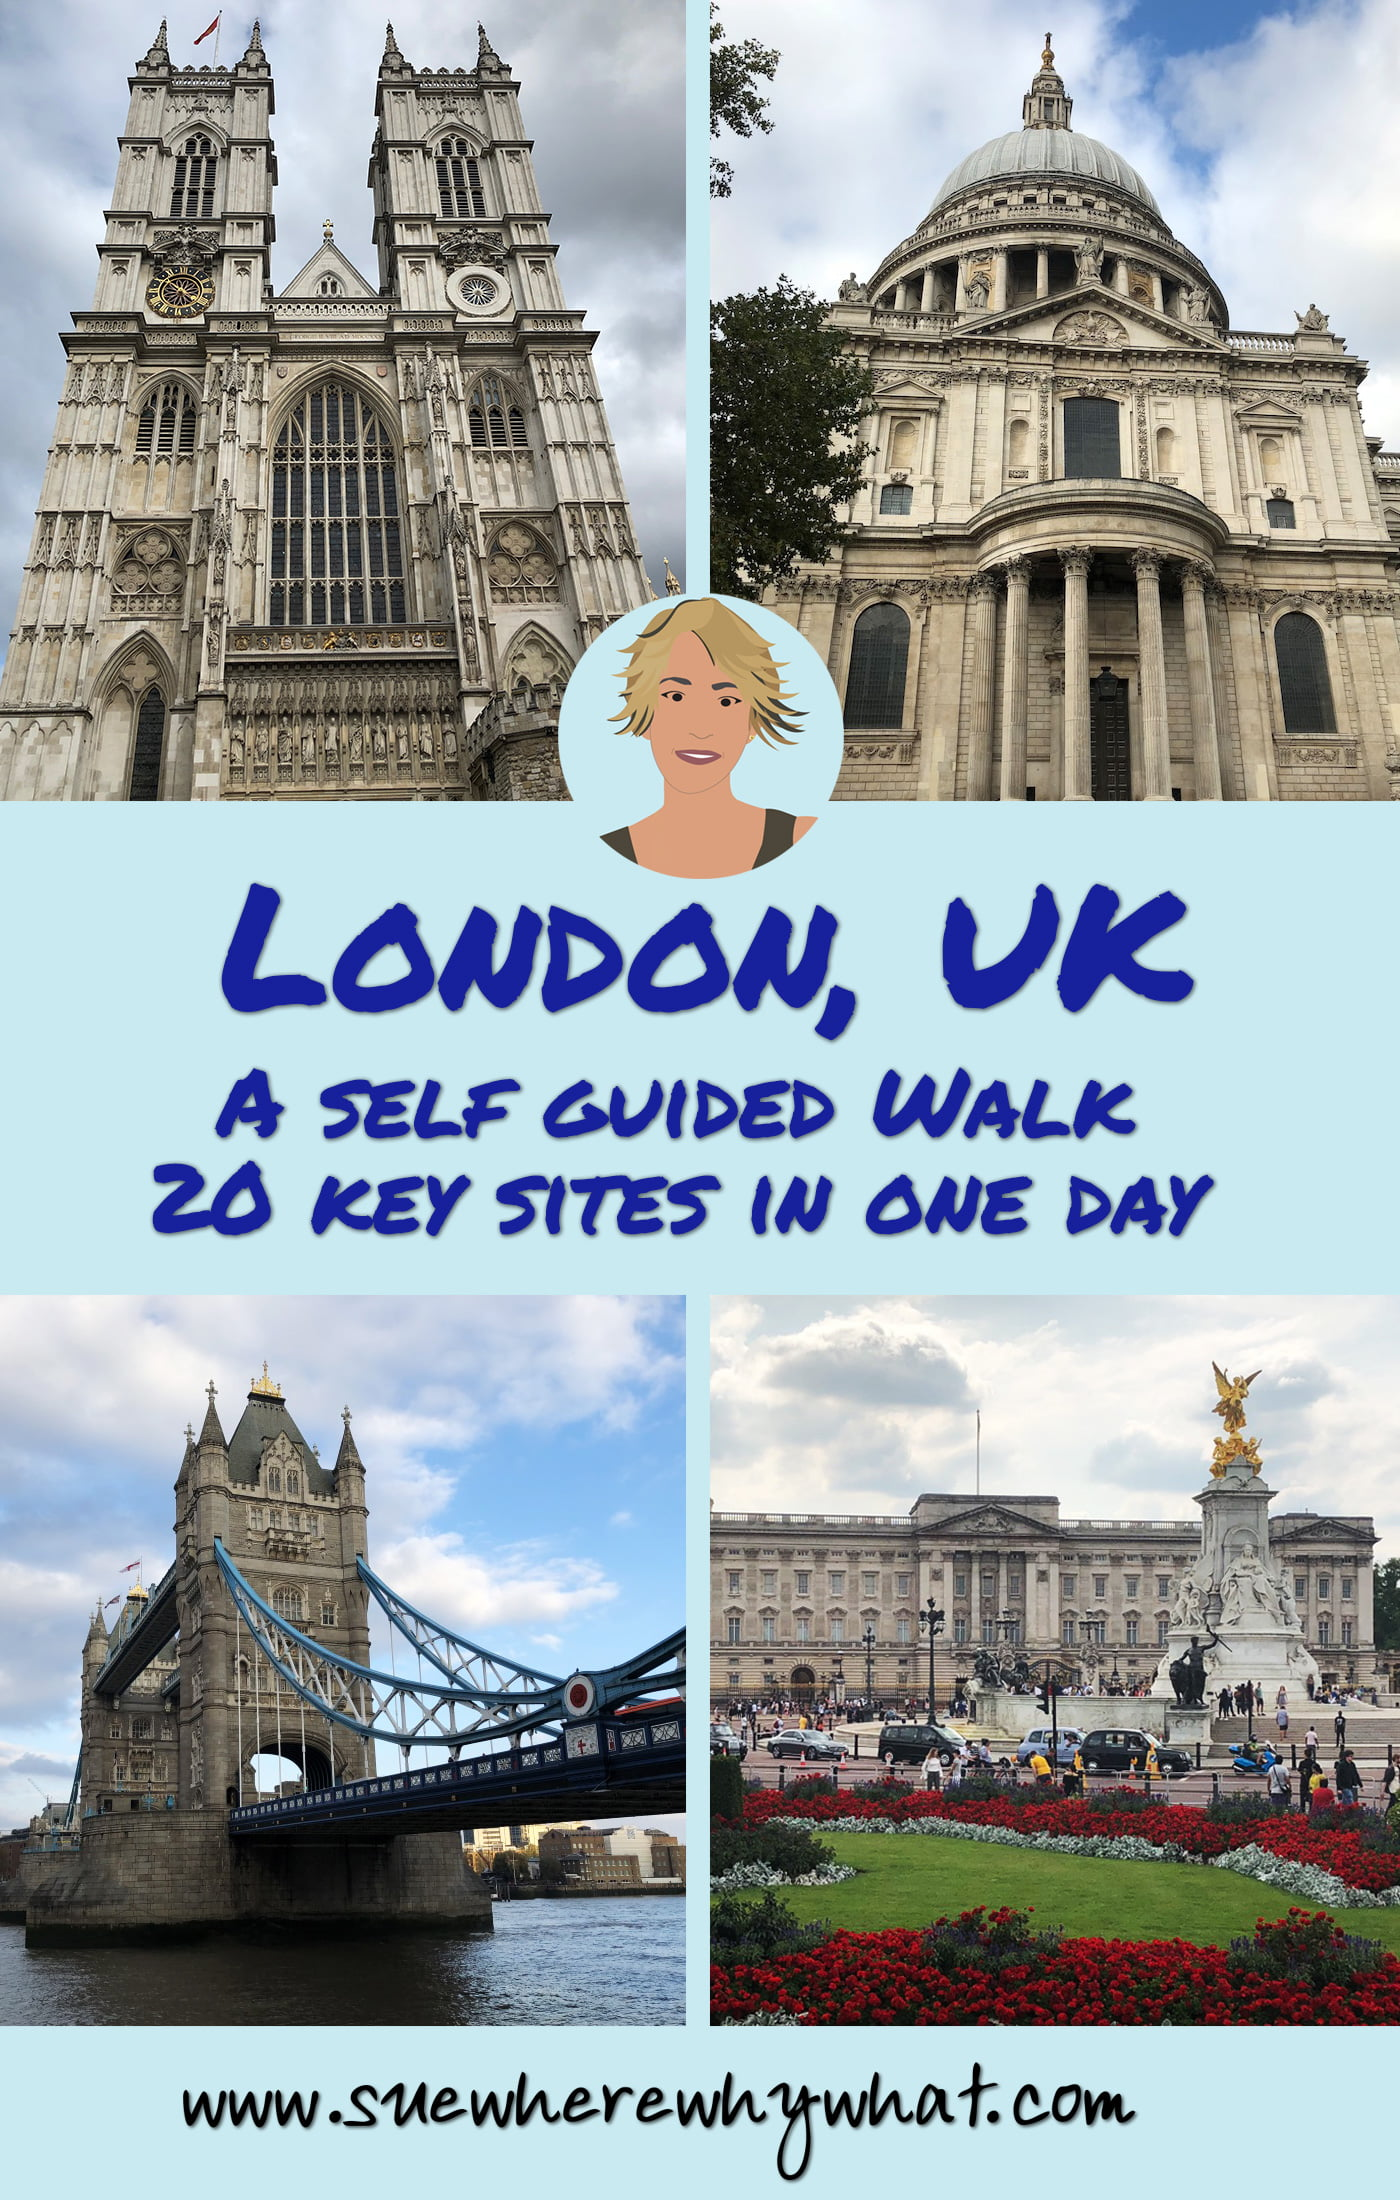 Looking for the perfect walk around London? Directions & detours which includes St Paul's Cathedral, Millennium Bridge, Tate Modern, London Eye, Houses of Parliament, Big Ben, Westminster Abbey, Buckingham Palace, Trafalgar Square, Piccadilly Circus, Leicester Square, Regent Street, Oxford Street & lots more in between! All from the viewpoint of a local who has taken this route hundreds of times.